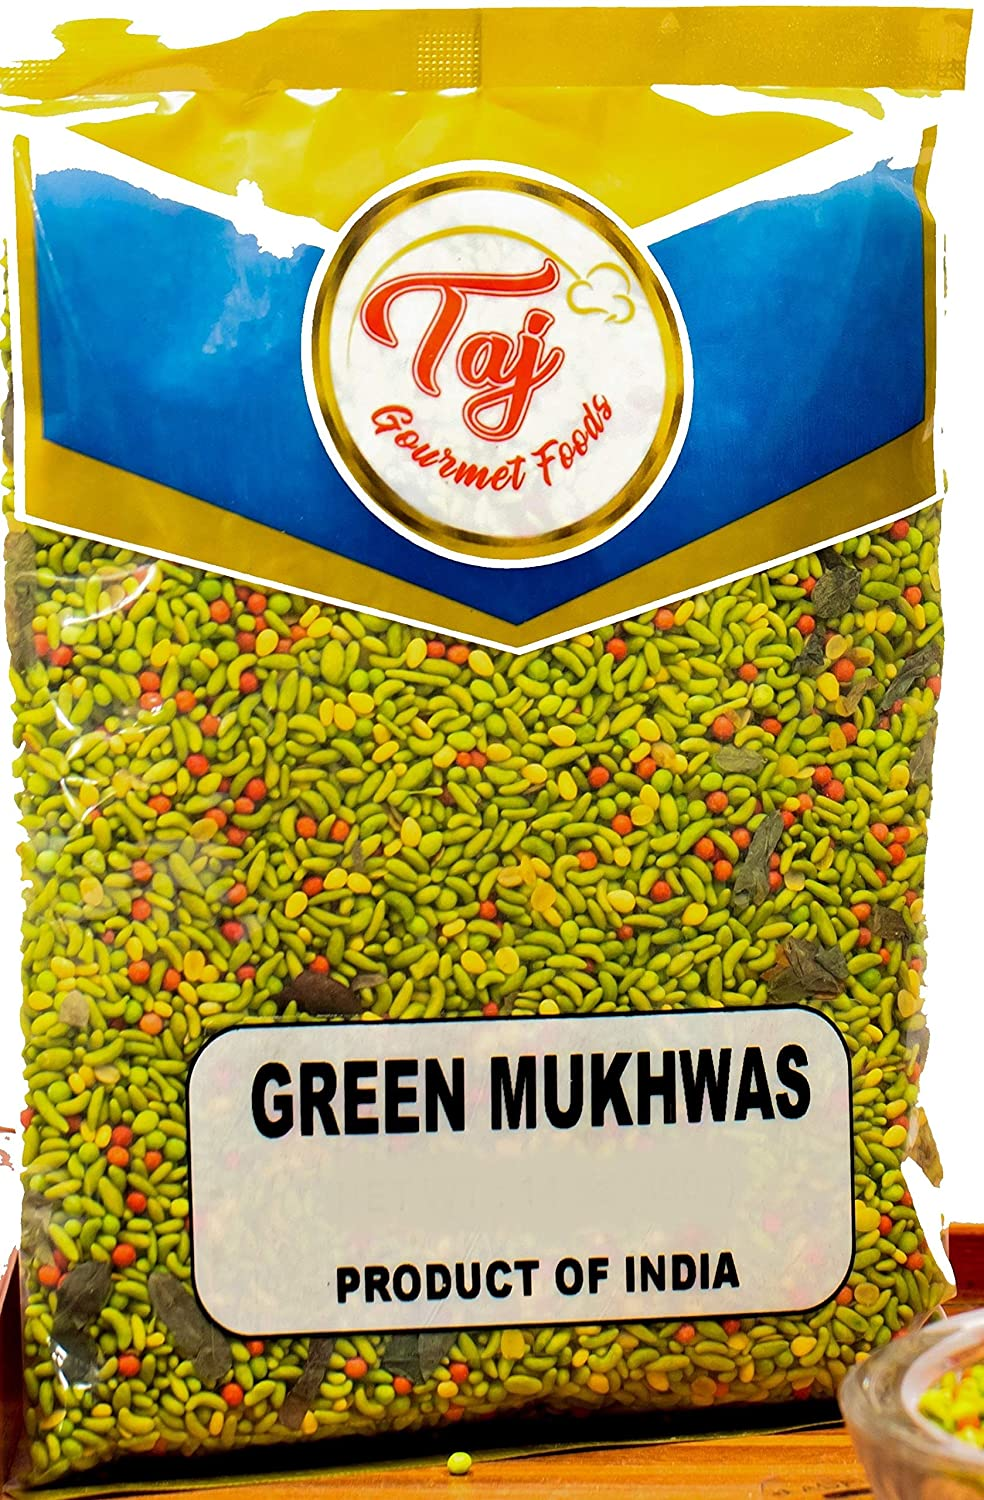 TAJ Premium Indian Green Mukhwas, Candied Fennel Seeds (Saunf), 3.5-Ounce